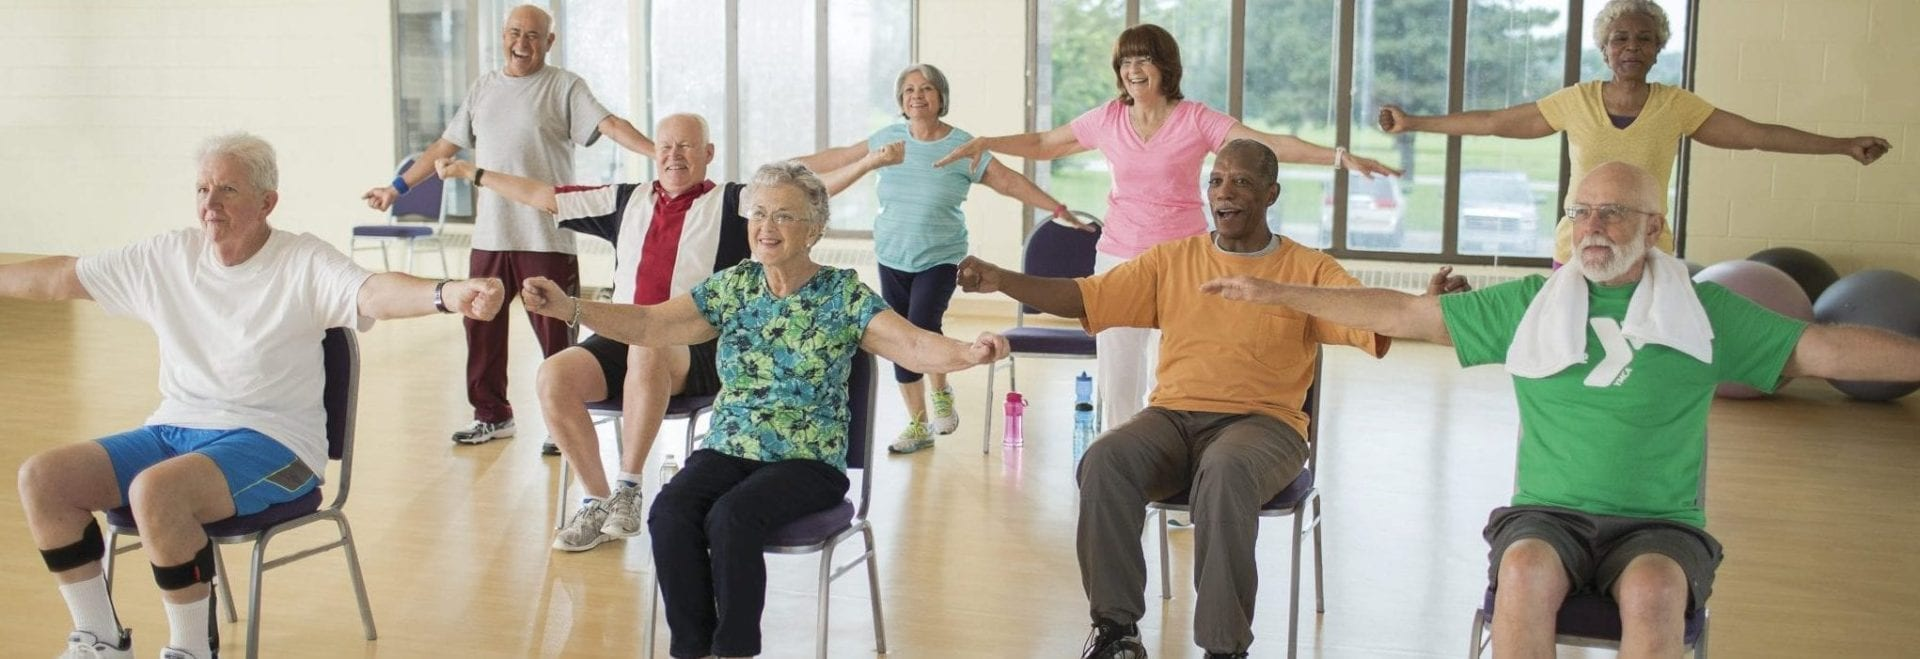 9 older adults working out